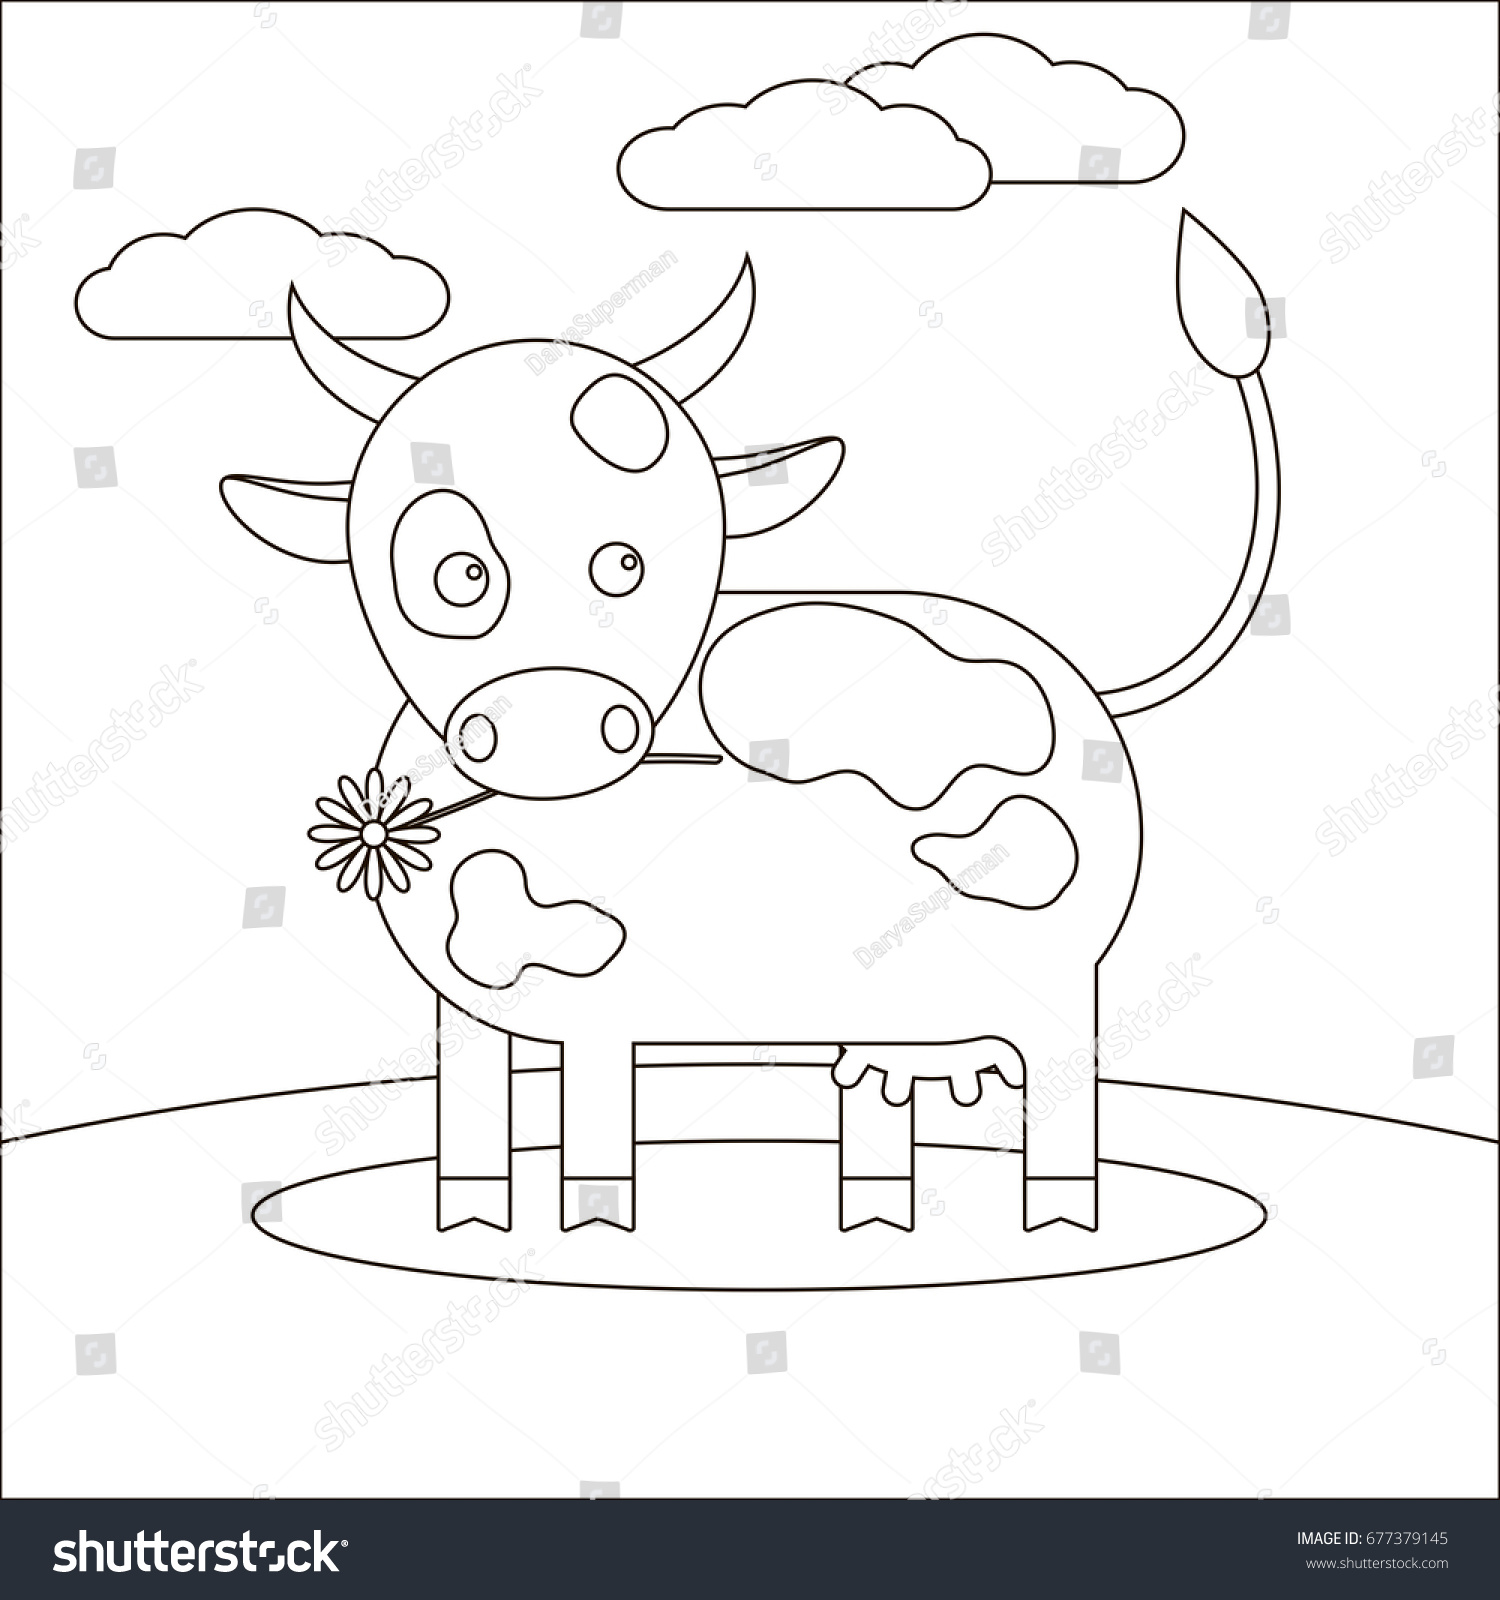 Animal Cow Coloring Book Children Cow Stock Illustration 677379145 ...